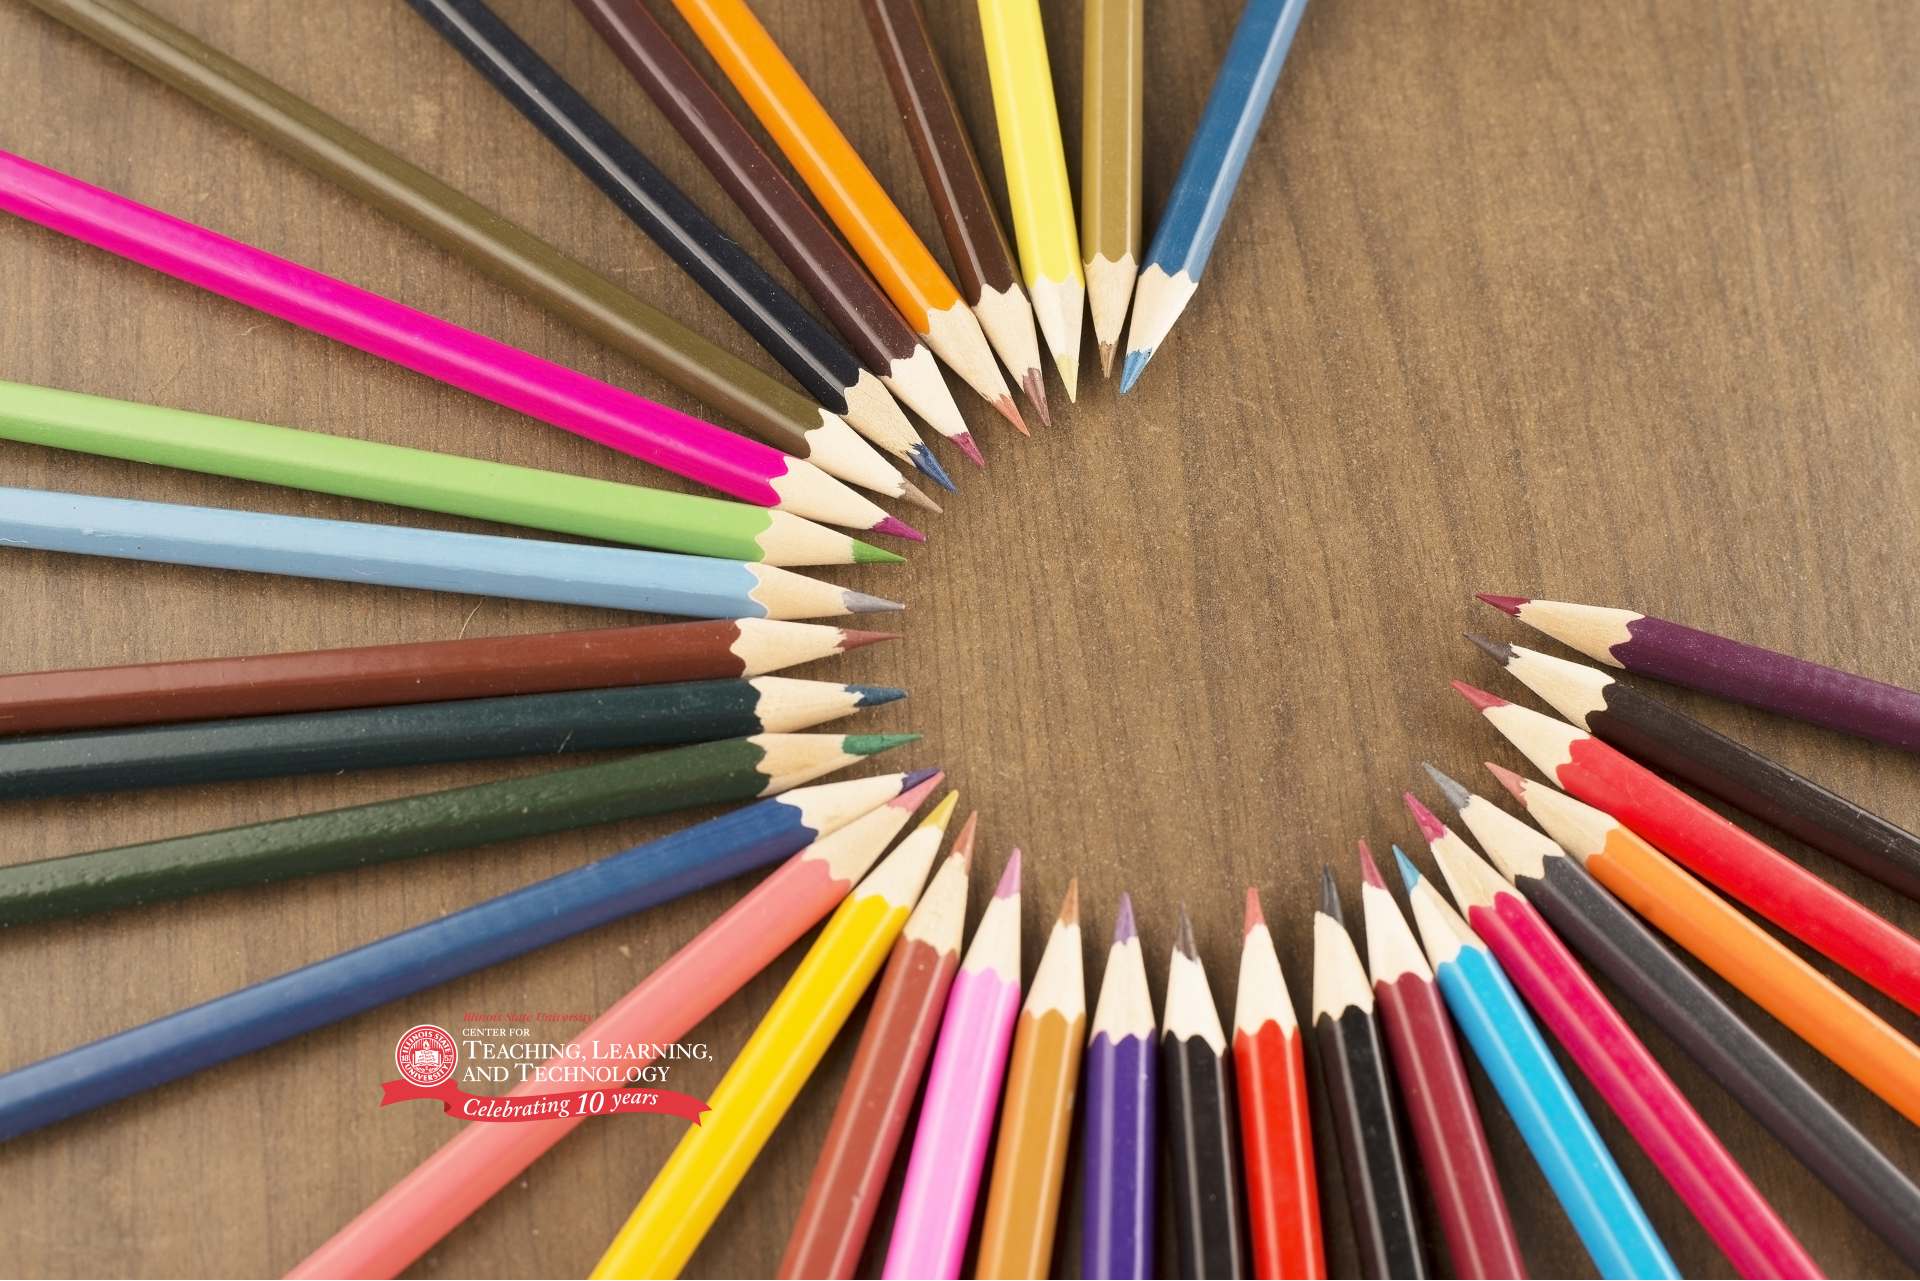 Colored pencils with CTLT anniversary logo